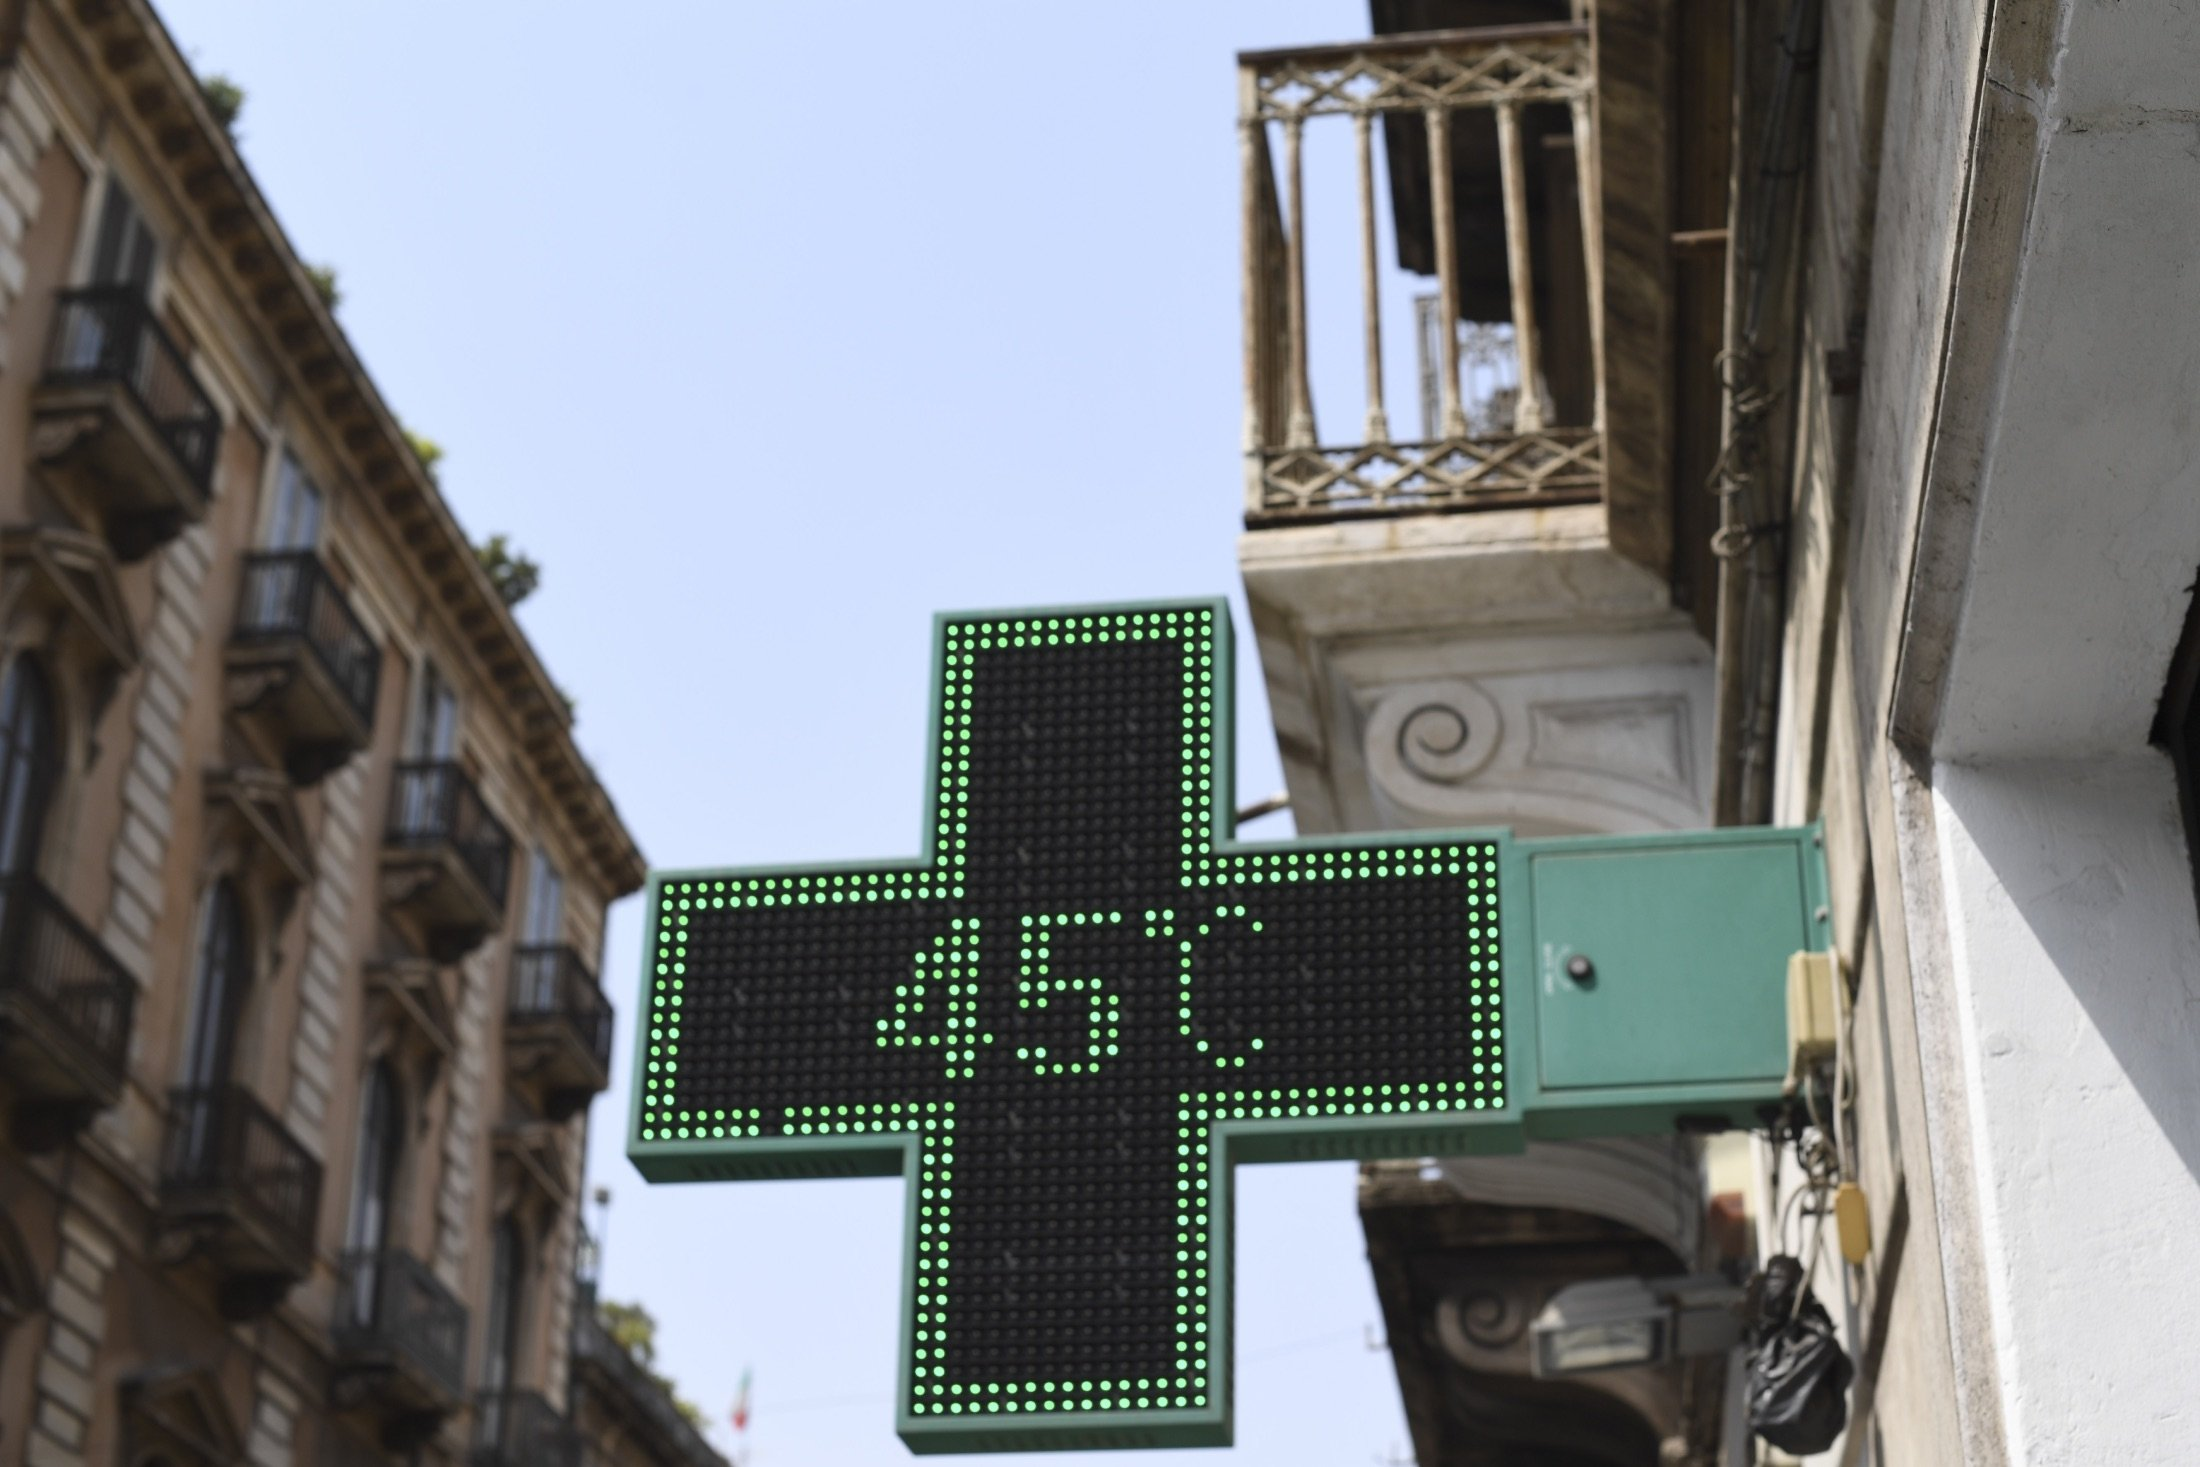 A pharmacy thermometer reports the temperature of 45 degrees Celsius in a street of Catania, Sicily,  Southern Italy, Aug. 11, 2021. (AP Photo)